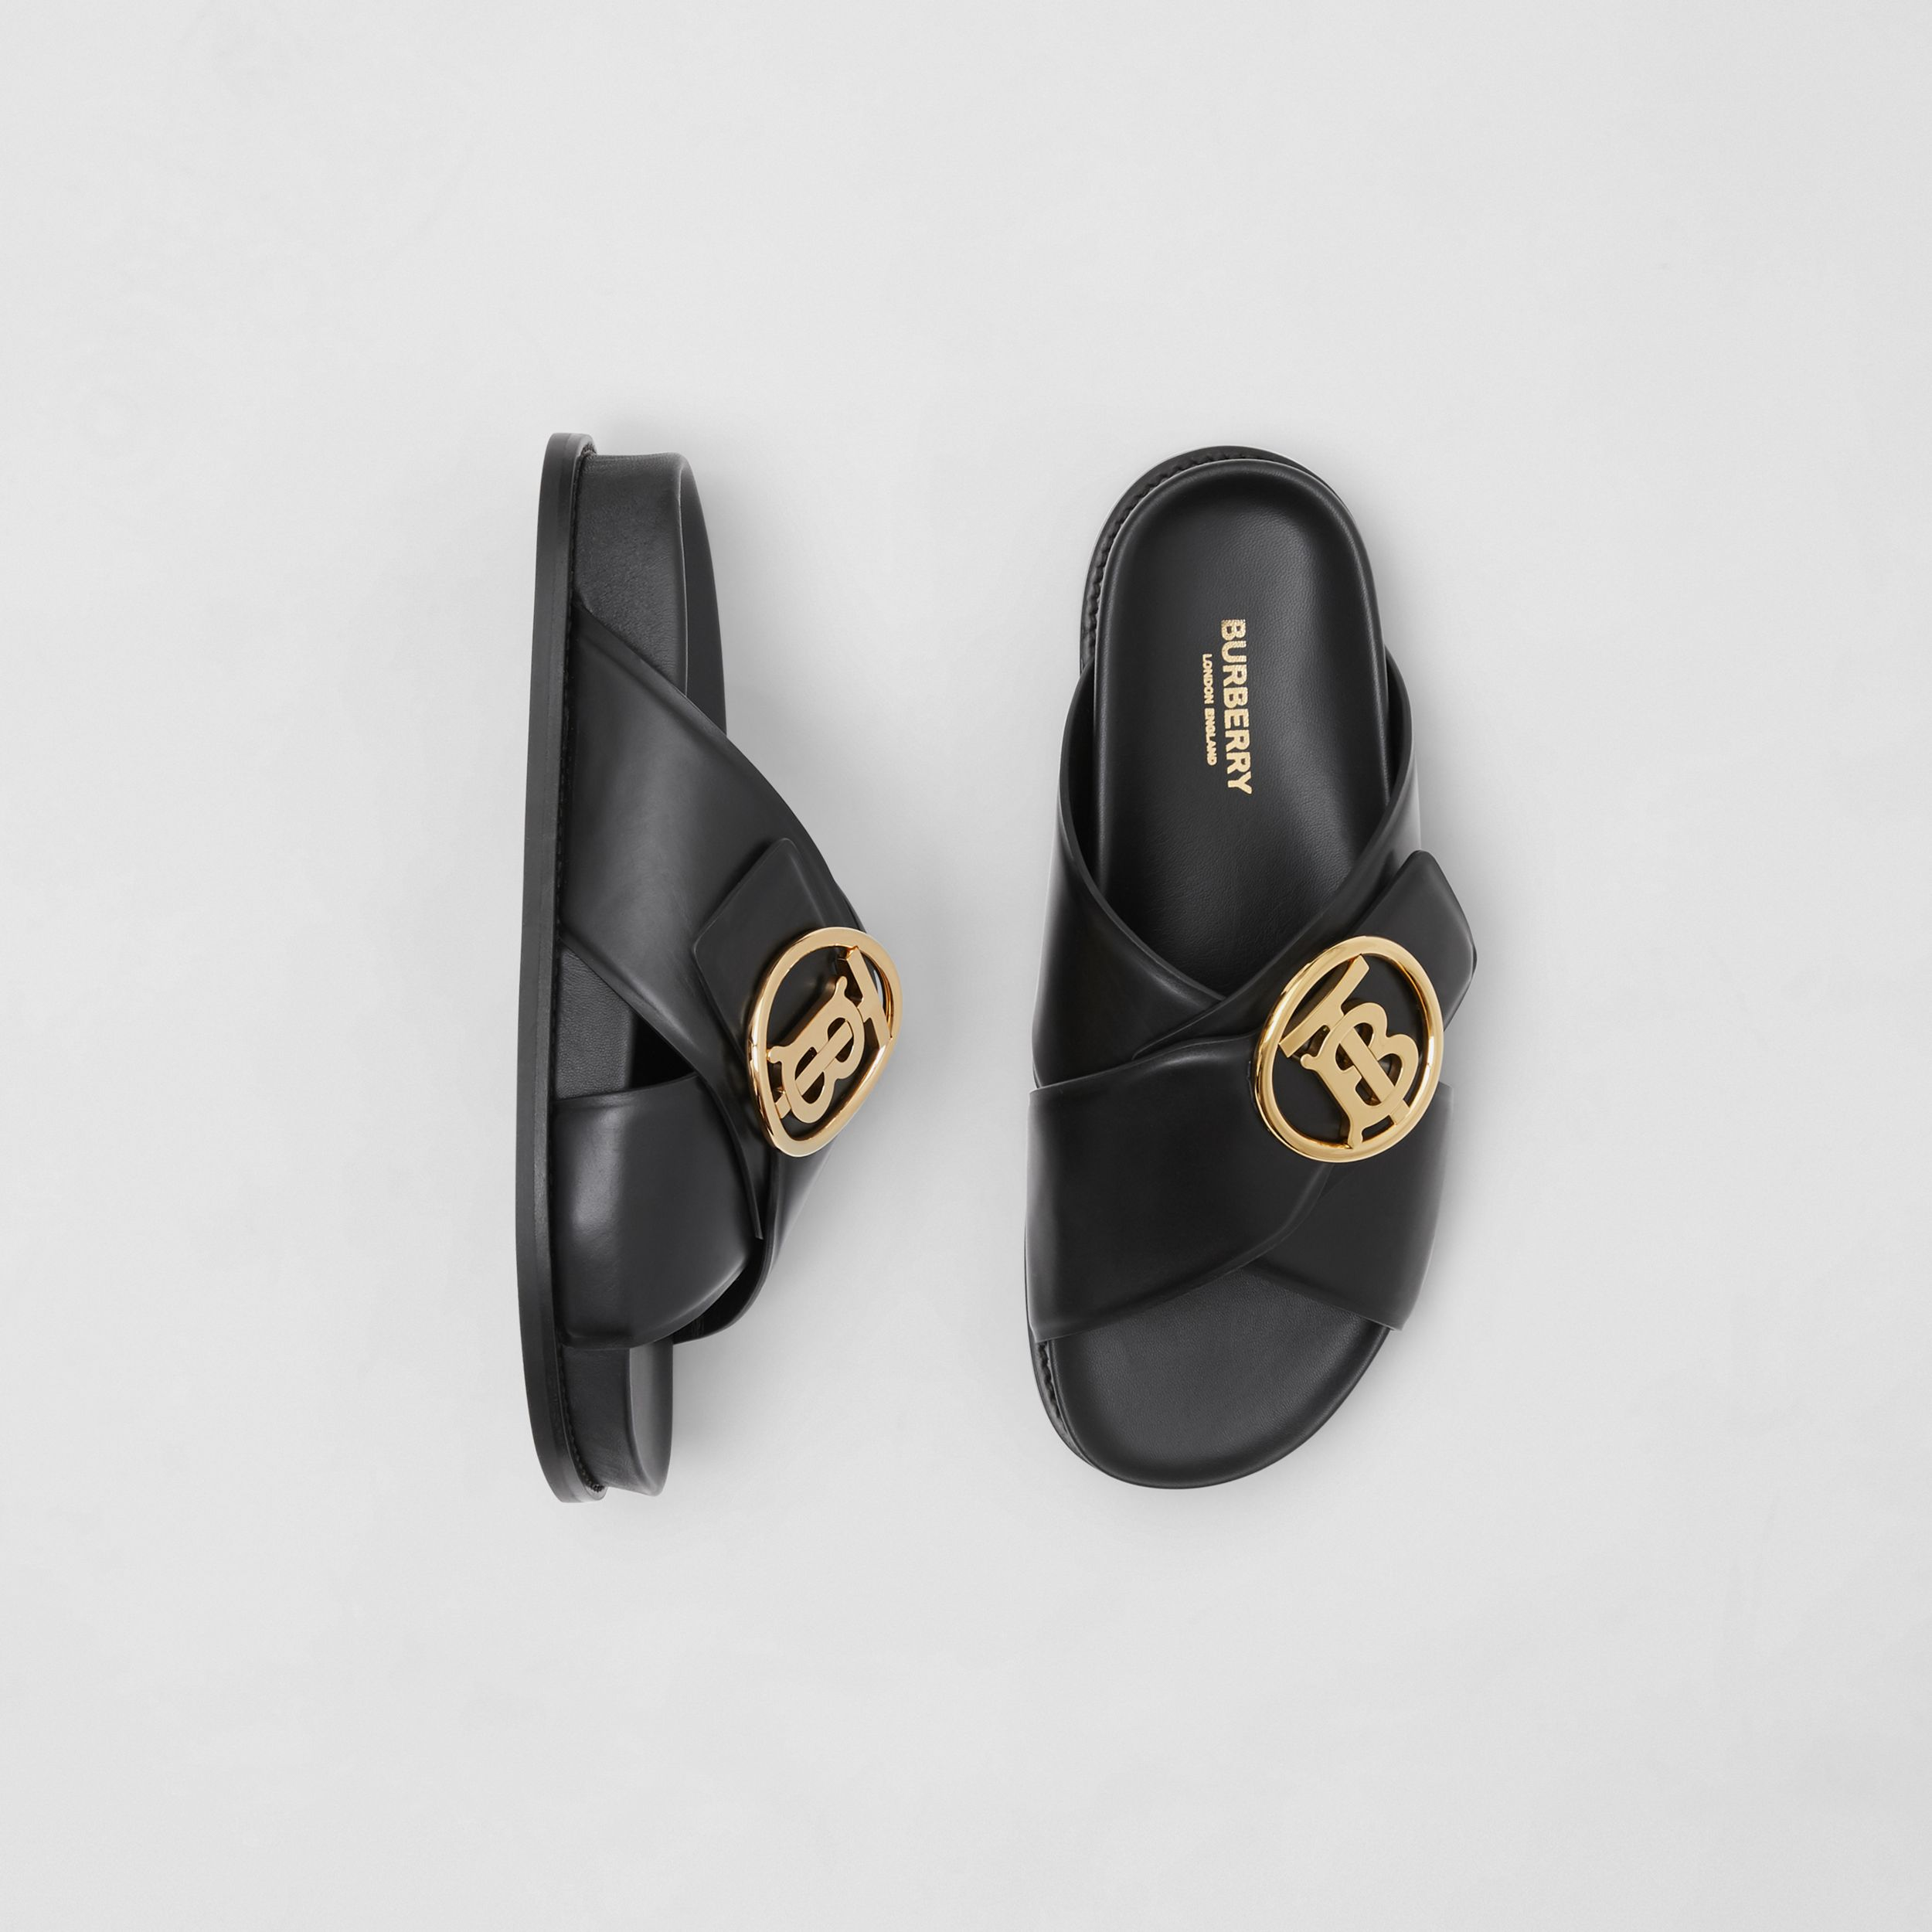 Monogram Motif Leather Slides in Black - Women | Burberry - 1